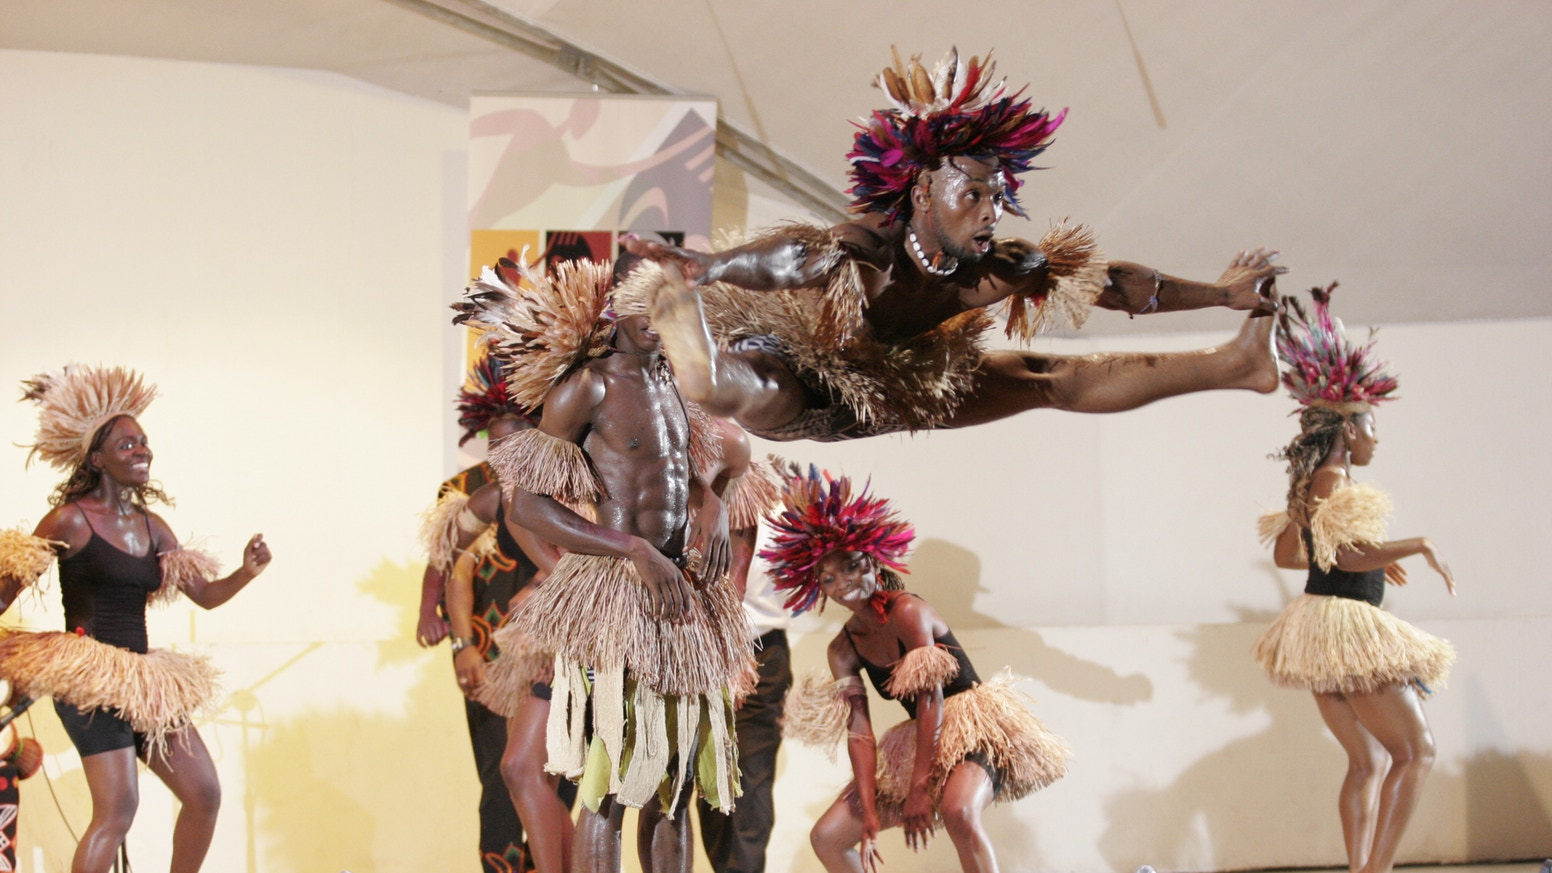 The Music, Dance & Arts & Culture of Cameroon by Daniel